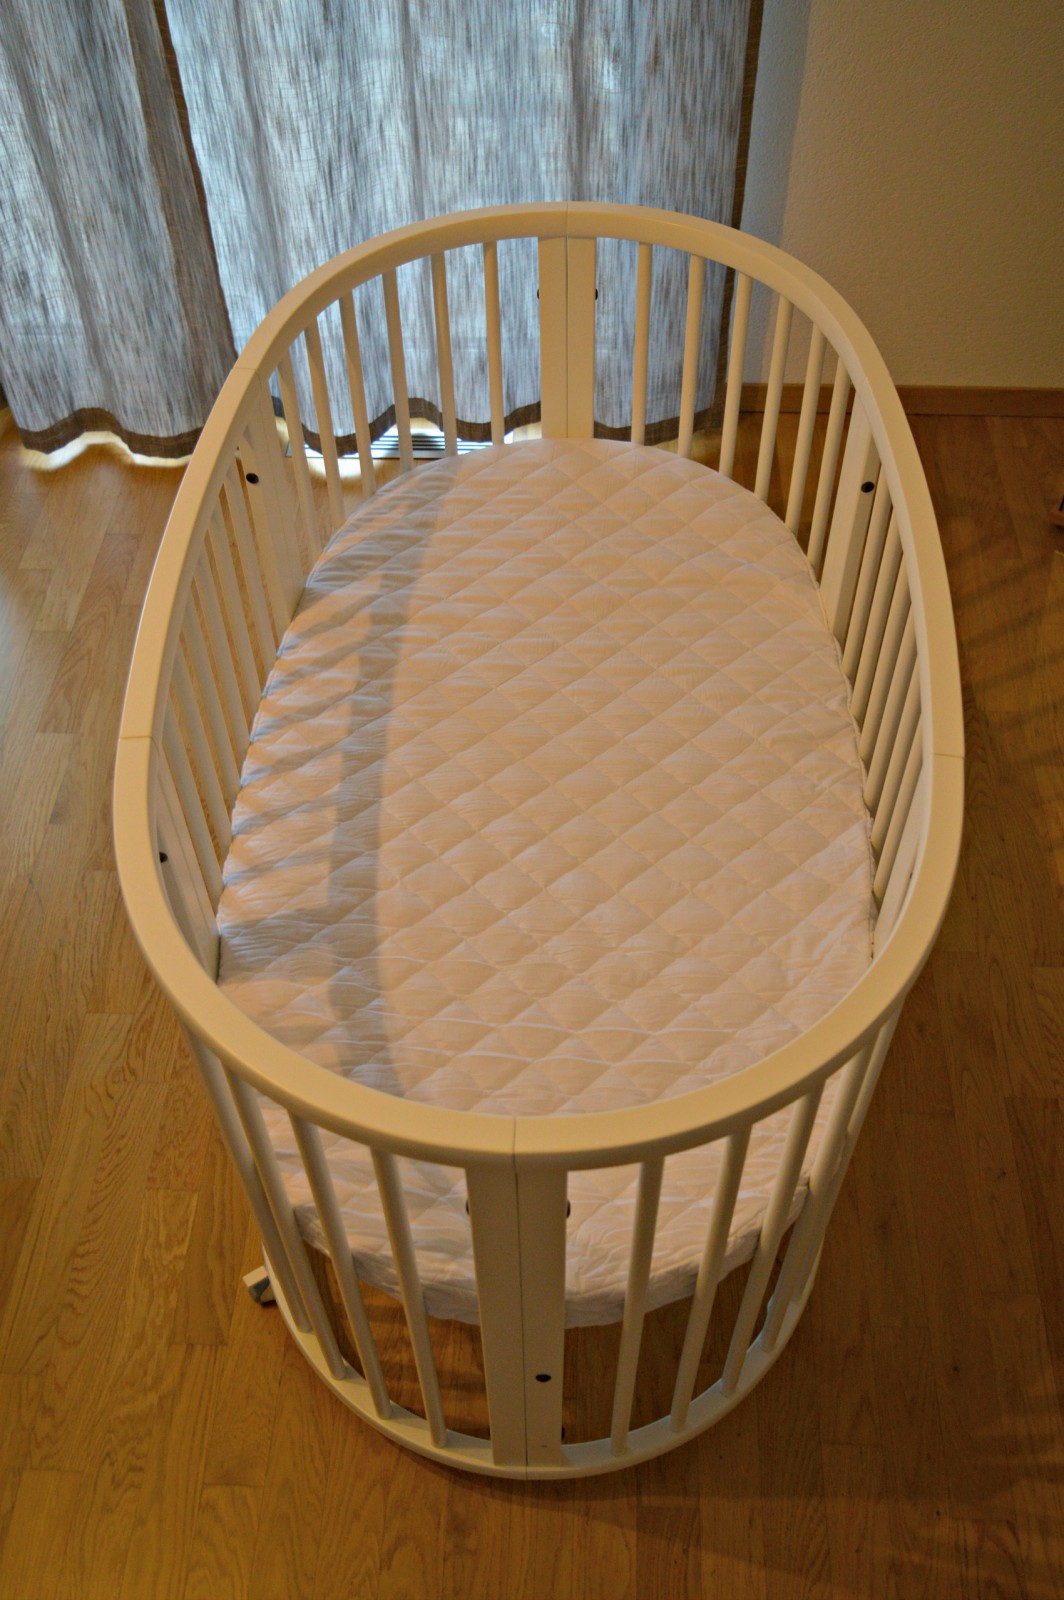 Convertible baby crib /Stokke Sleepi Bed